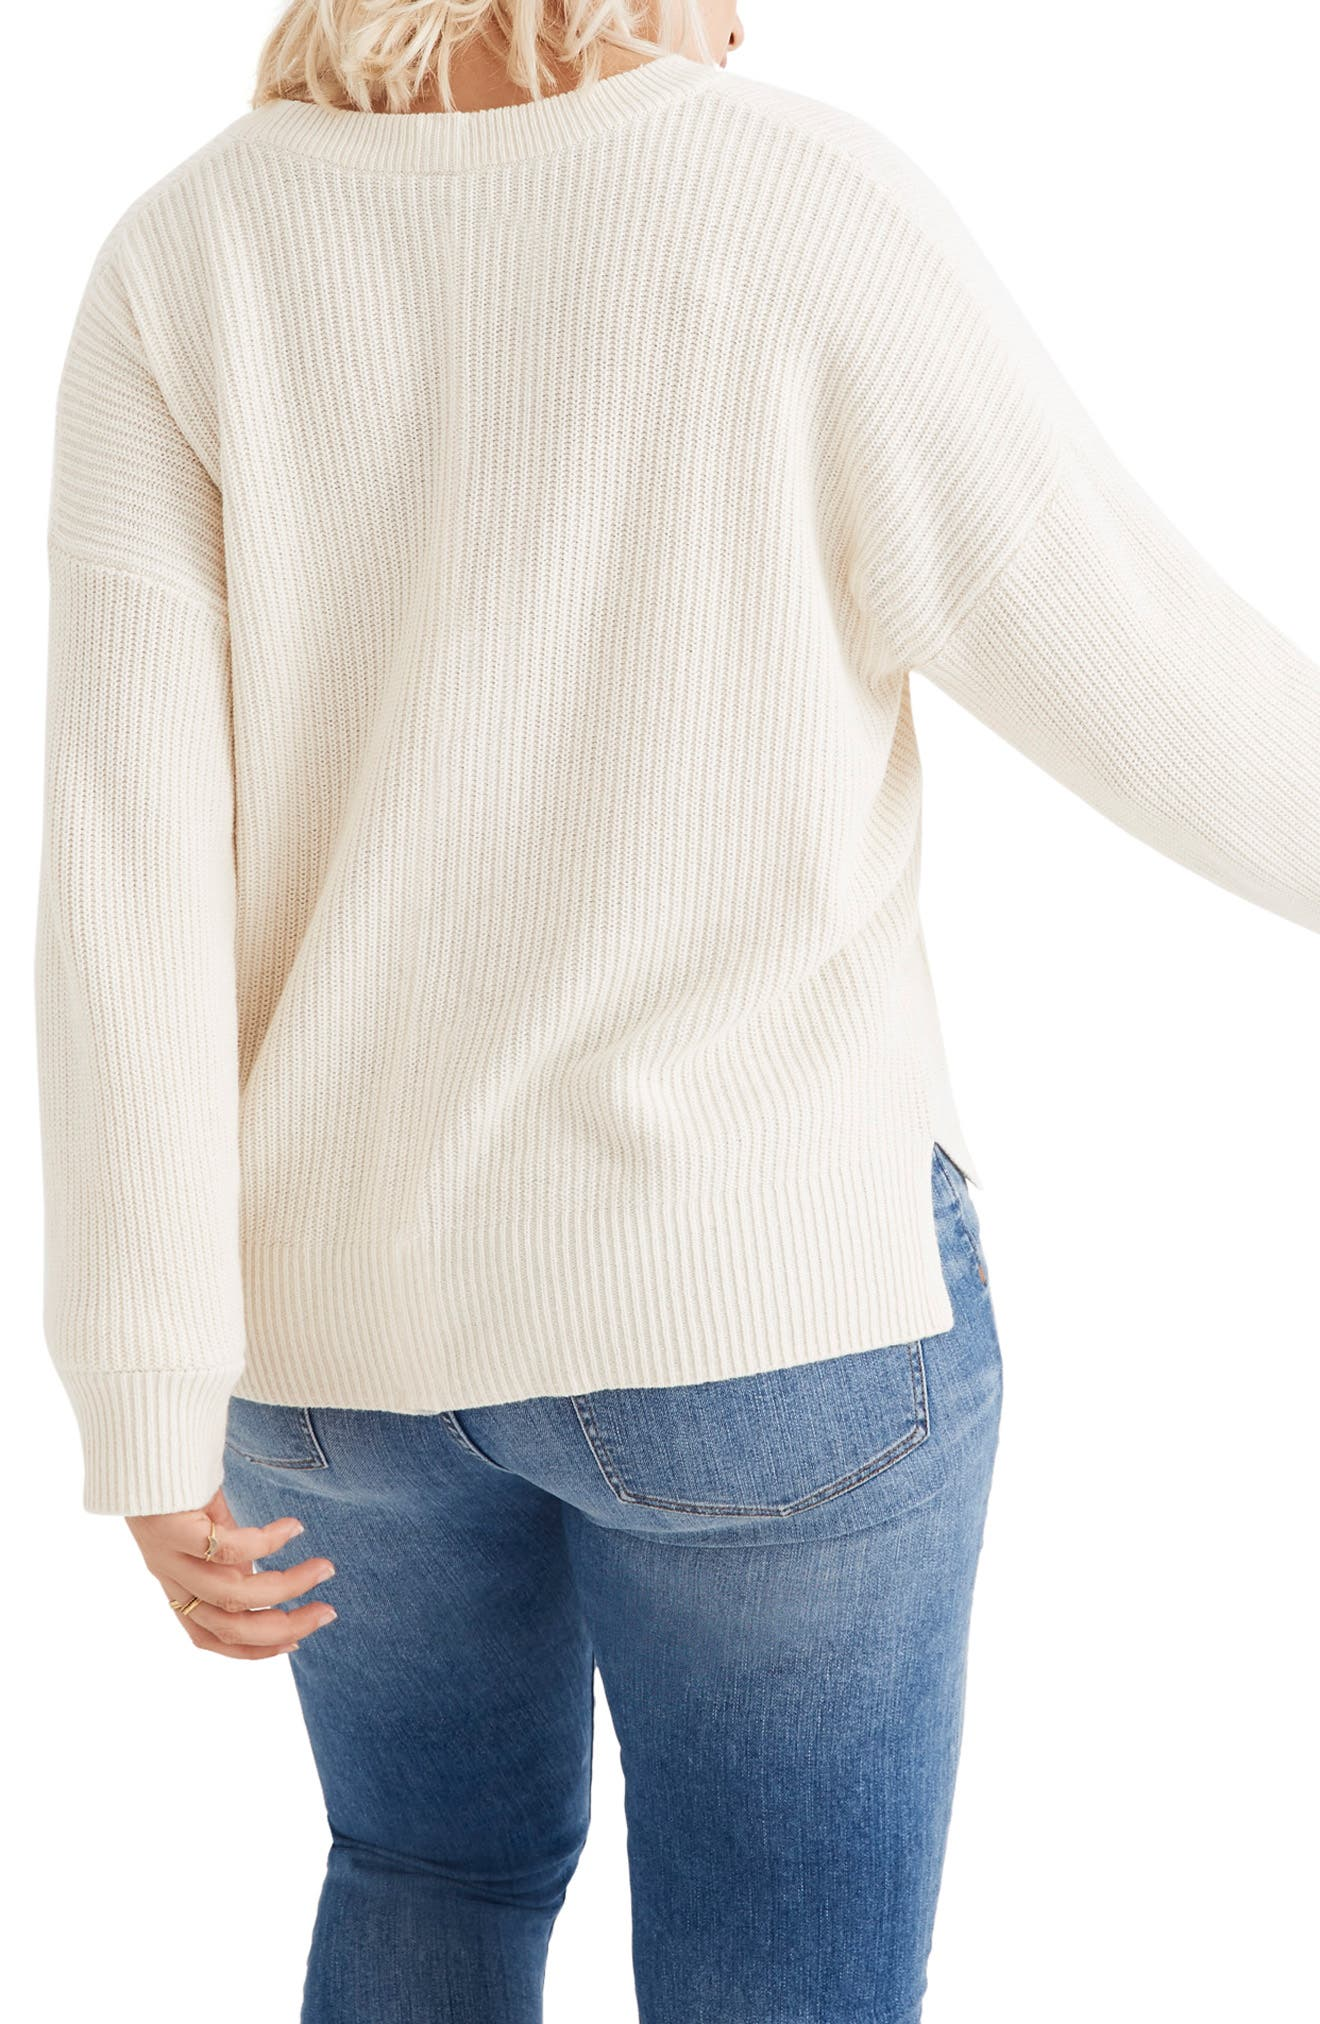 Patch Pocket Pullover Sweater,                             Alternate thumbnail 5, color,                             BRIGHT IVORY